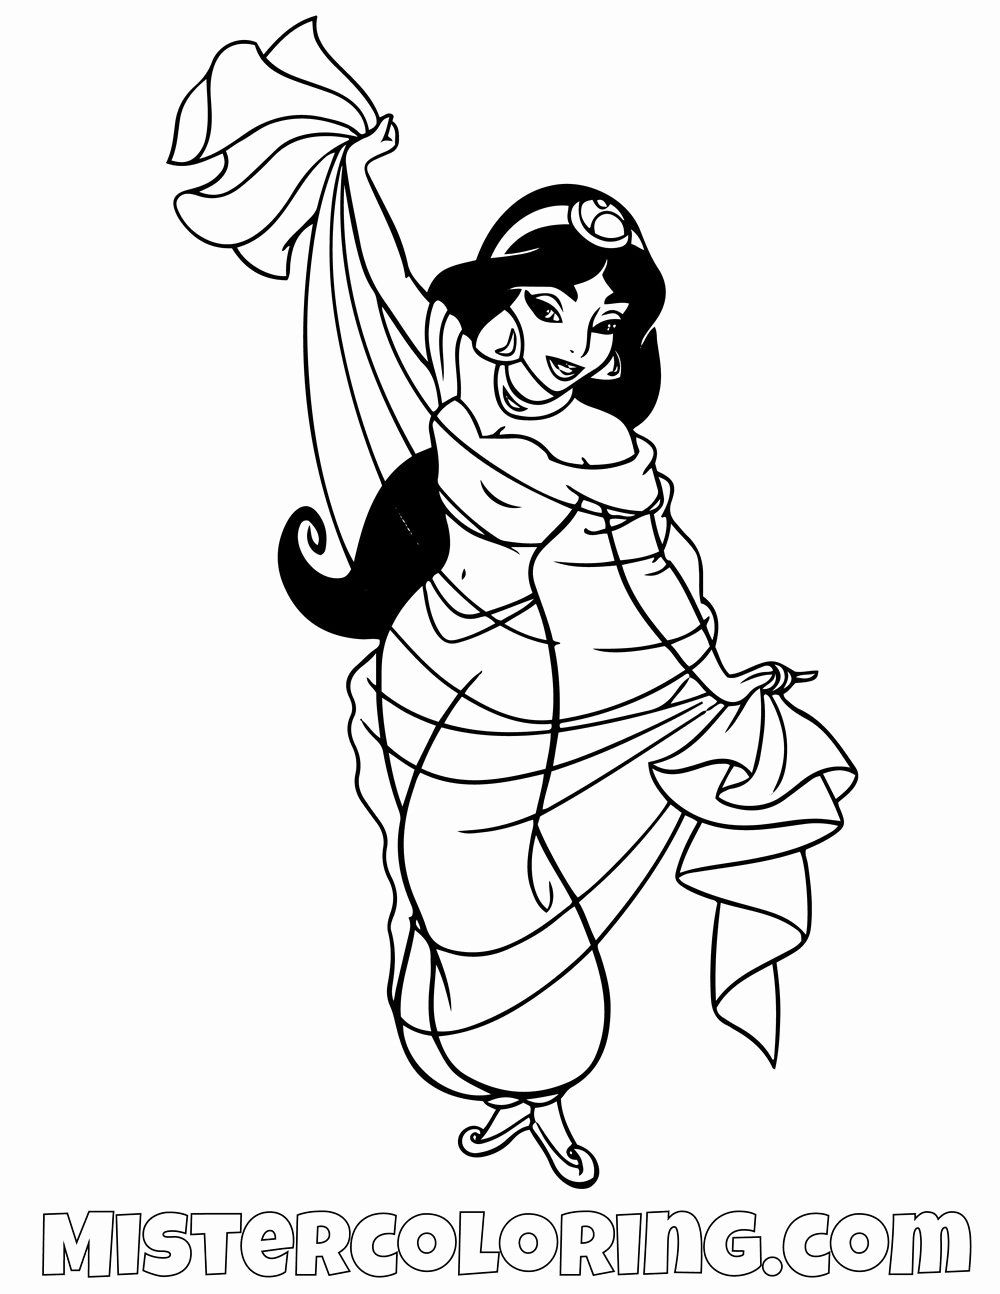 Princess Jasmine Coloring Sheets Inspirational Aladdin Coloring Pages For Kids Disney Princess Coloring Pages Disney Princess Colors Princess Coloring Pages